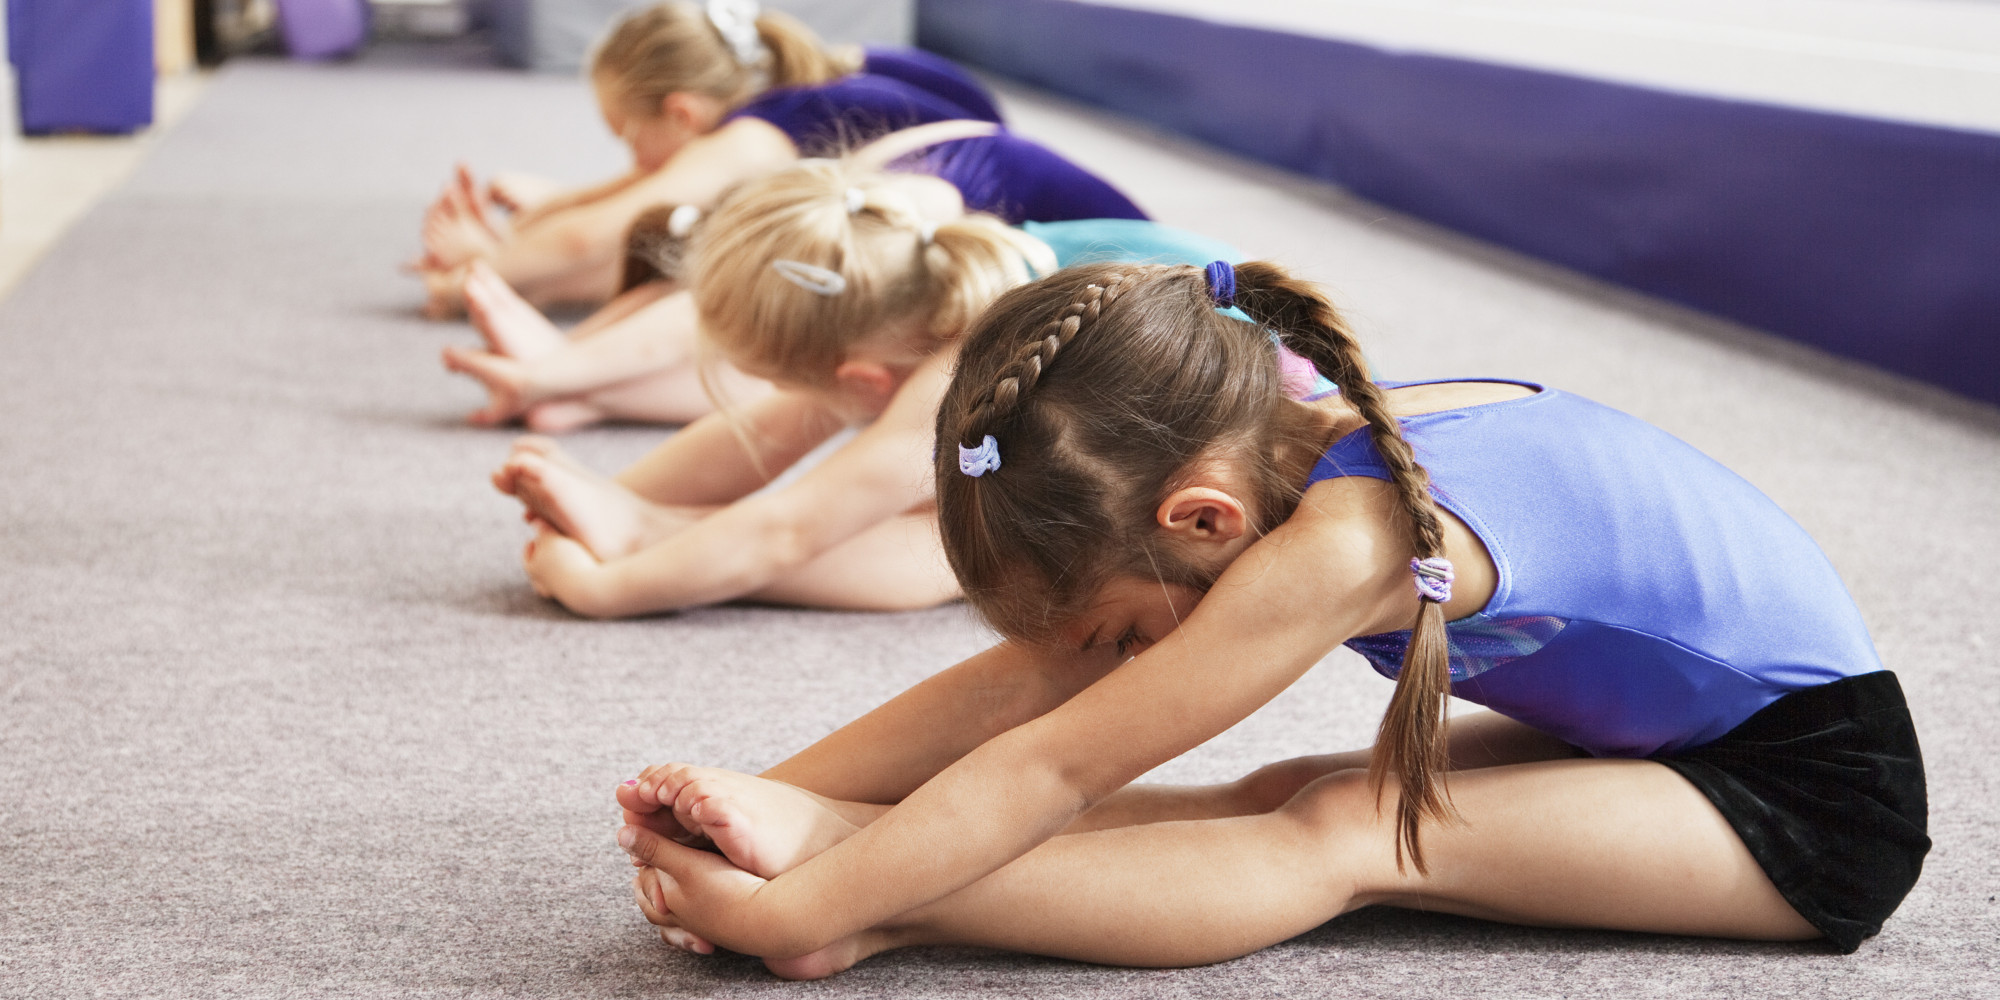 kids-stretching-facebook.jpg